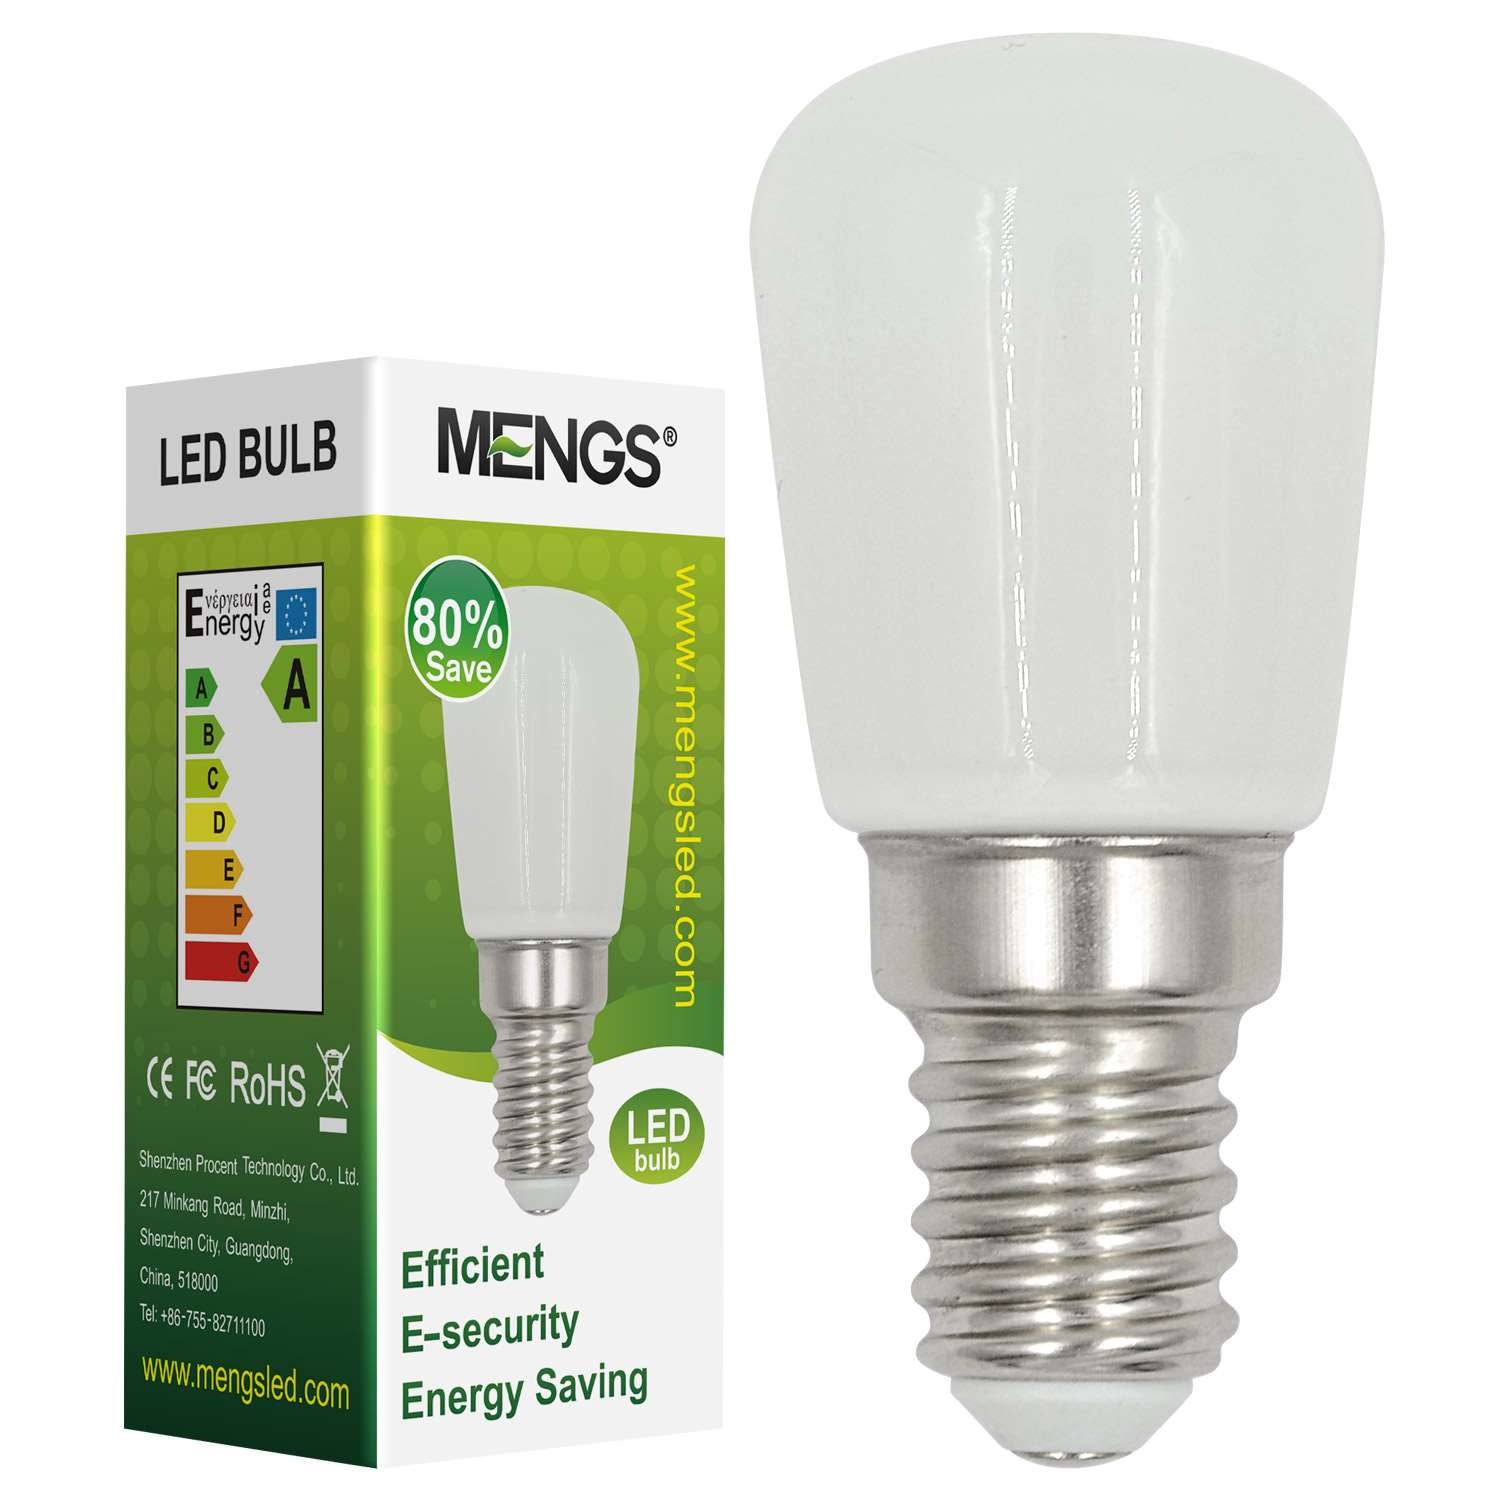 Energy Efficient Light Bulbs Green Energy Management 100 Energy Saving Light Bulbs Led